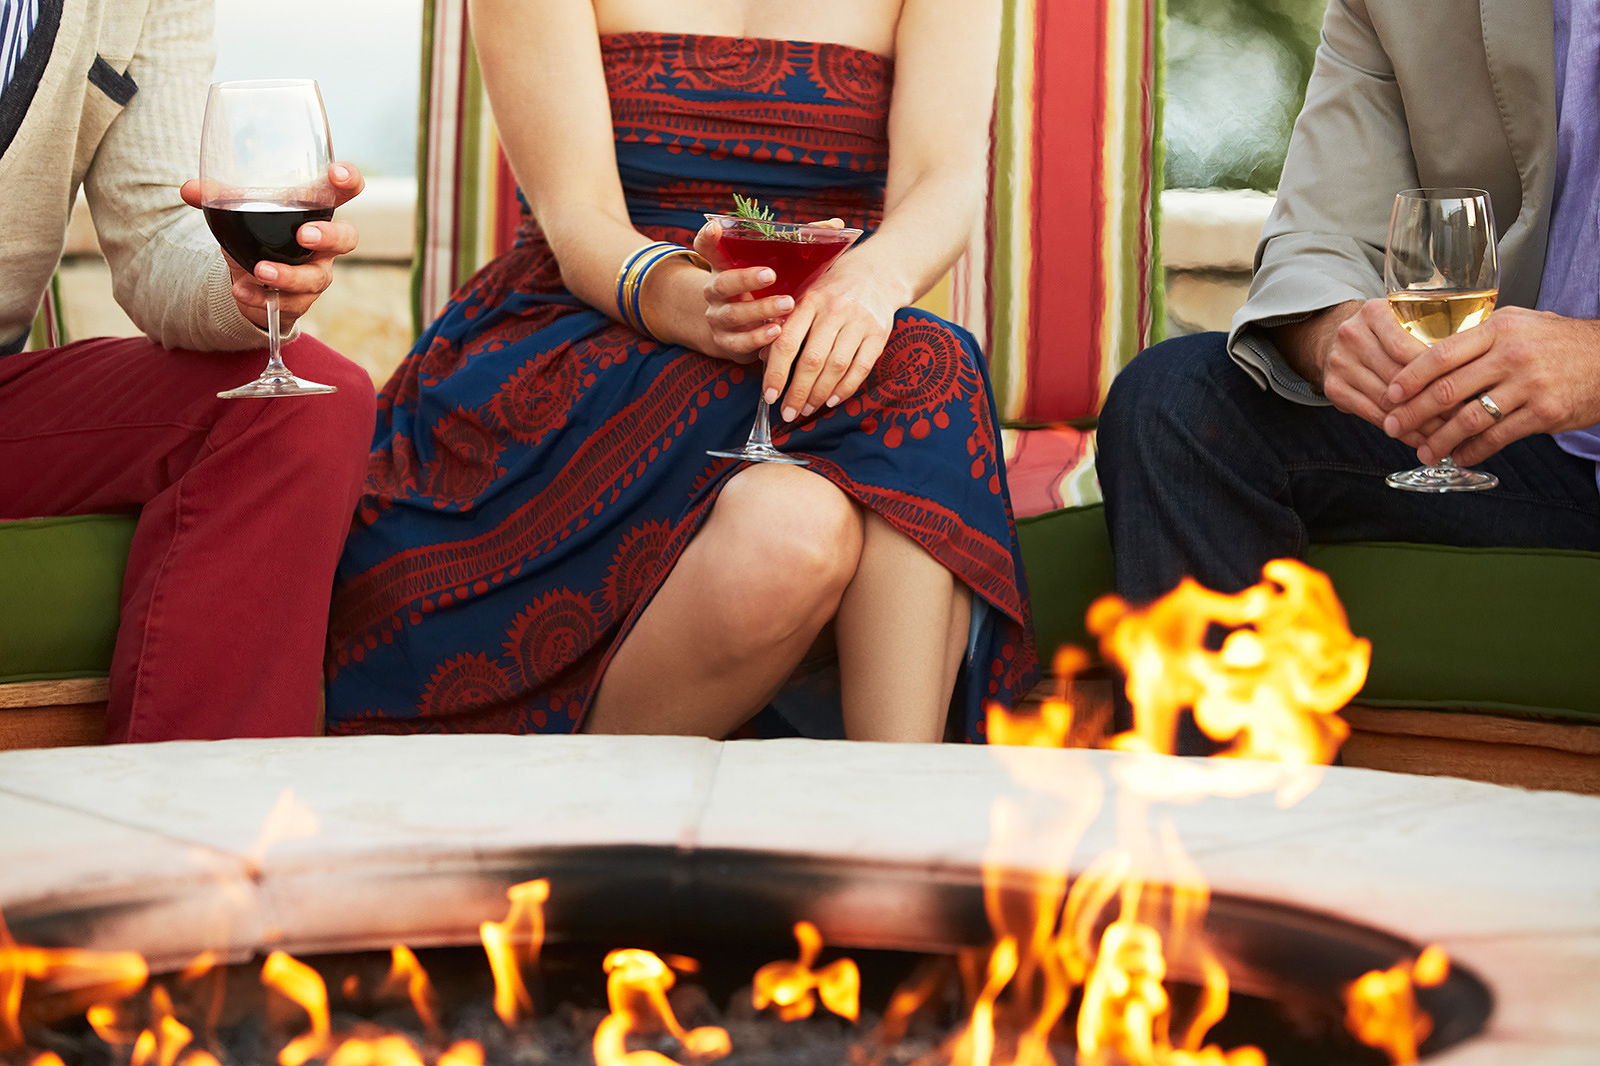 Drinking Wine Around Fire Pit with Friends  | Dovis Bird Agency Photography